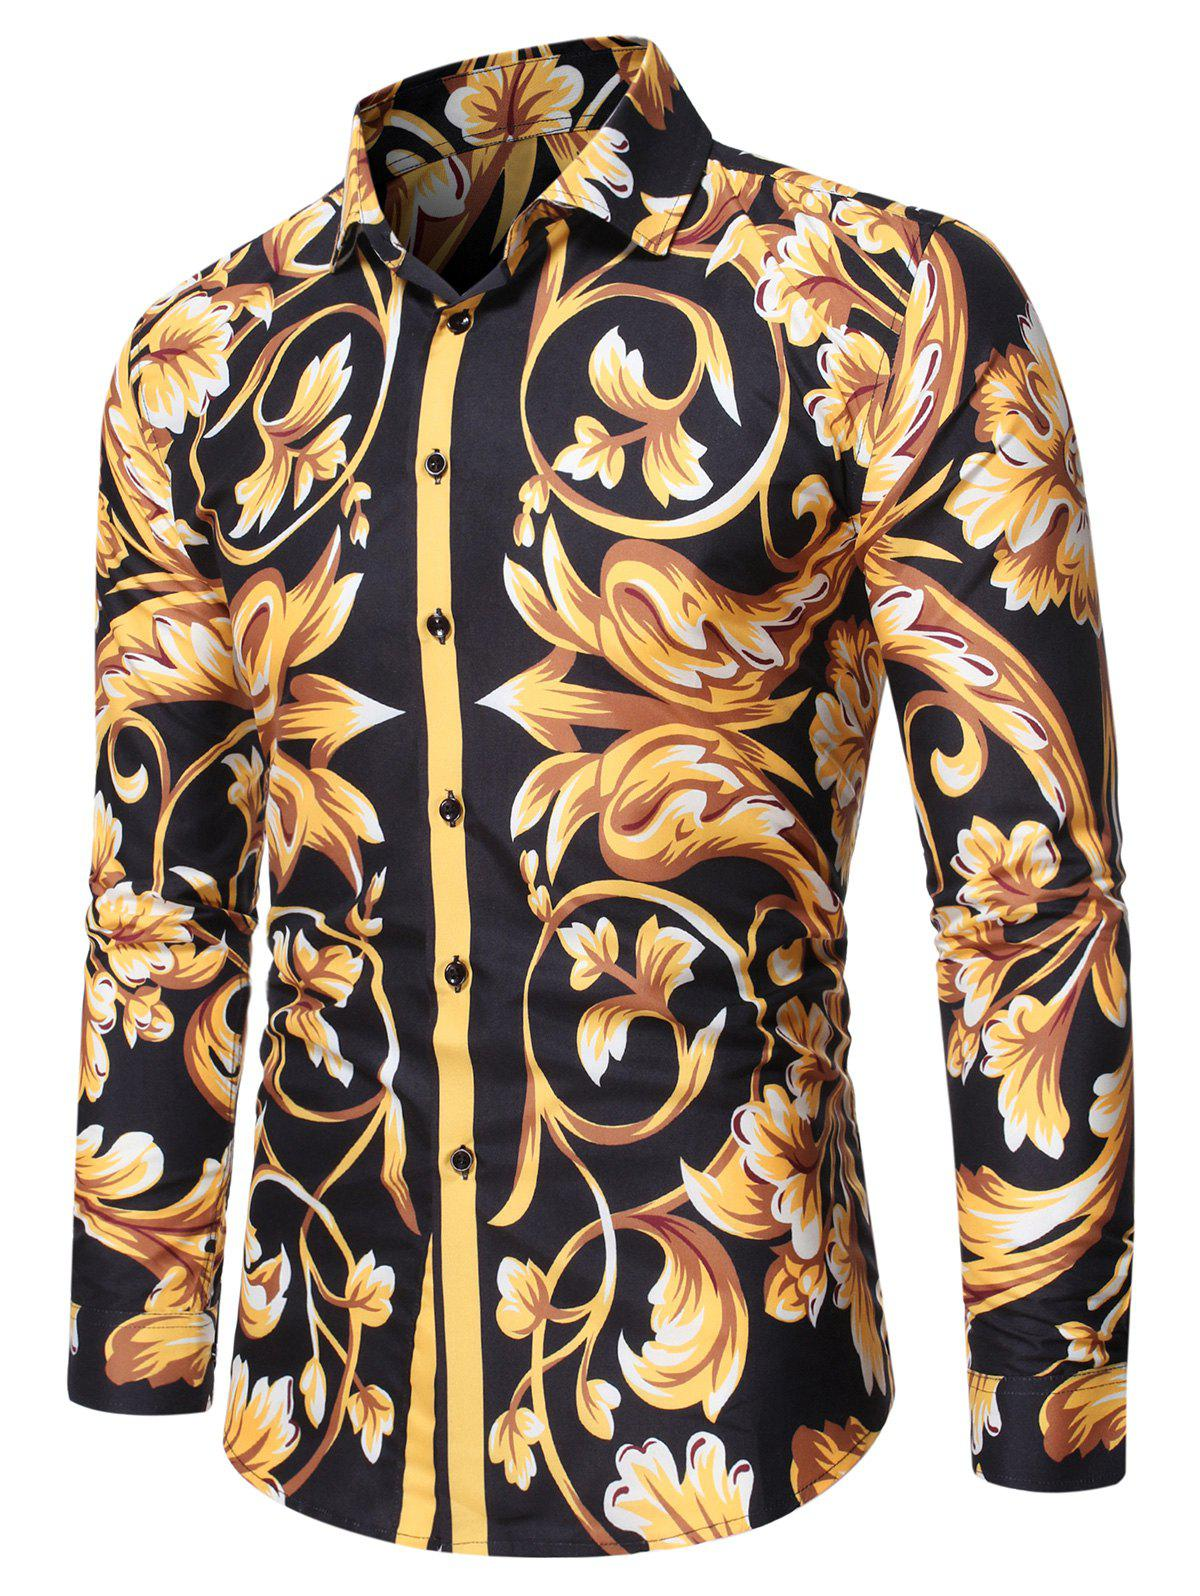 Baroque Print Button Up Long Sleeve T Shirt фото